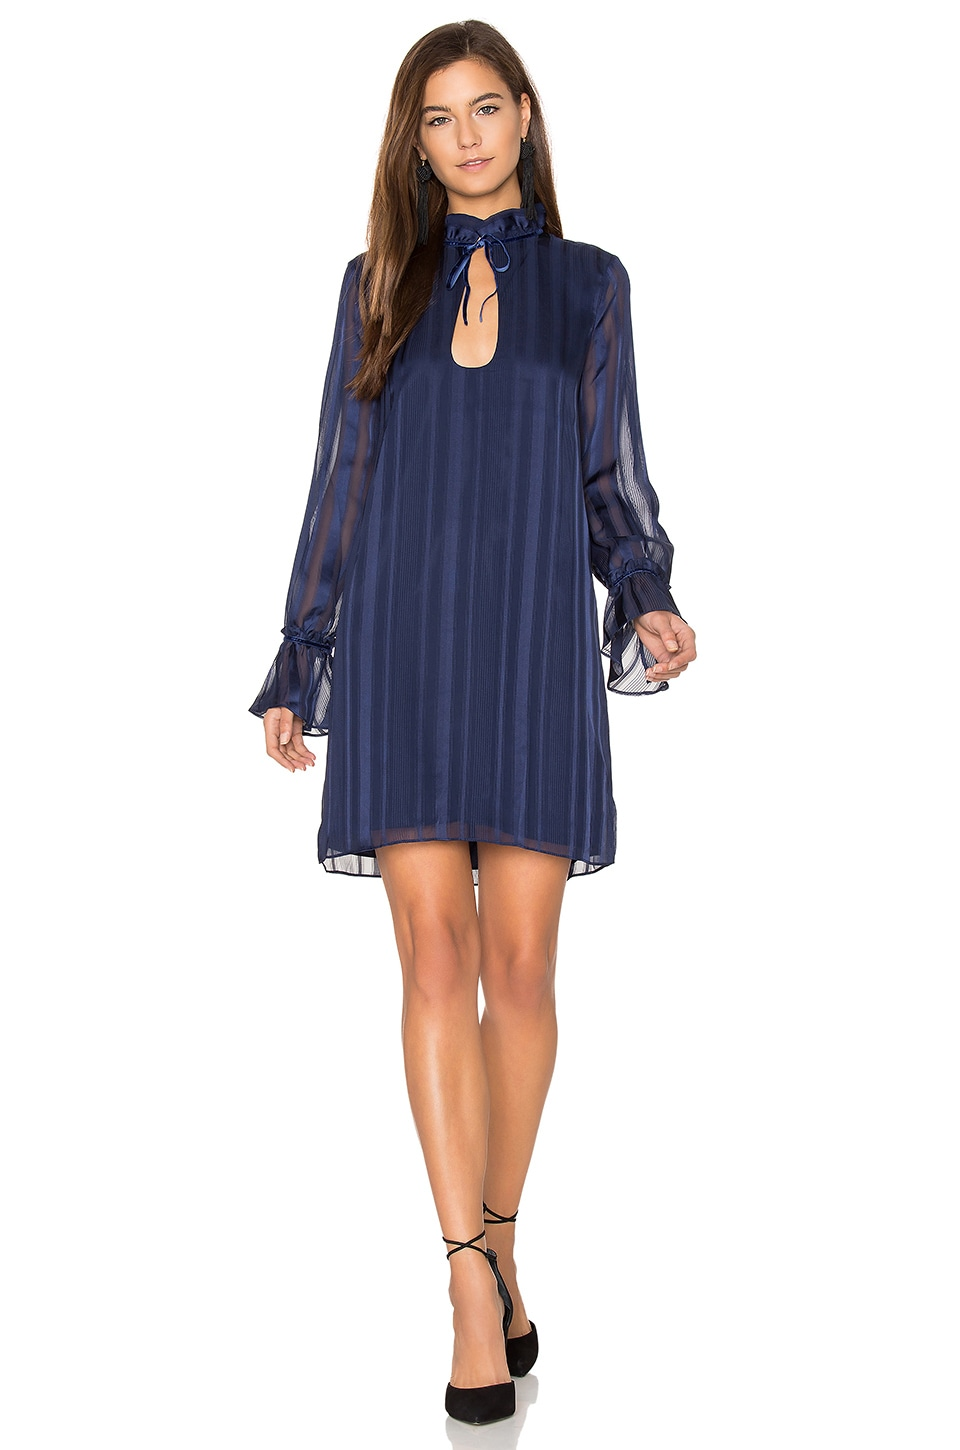 L'Academie The 70s Ruffle Sleeve Dress in Navy